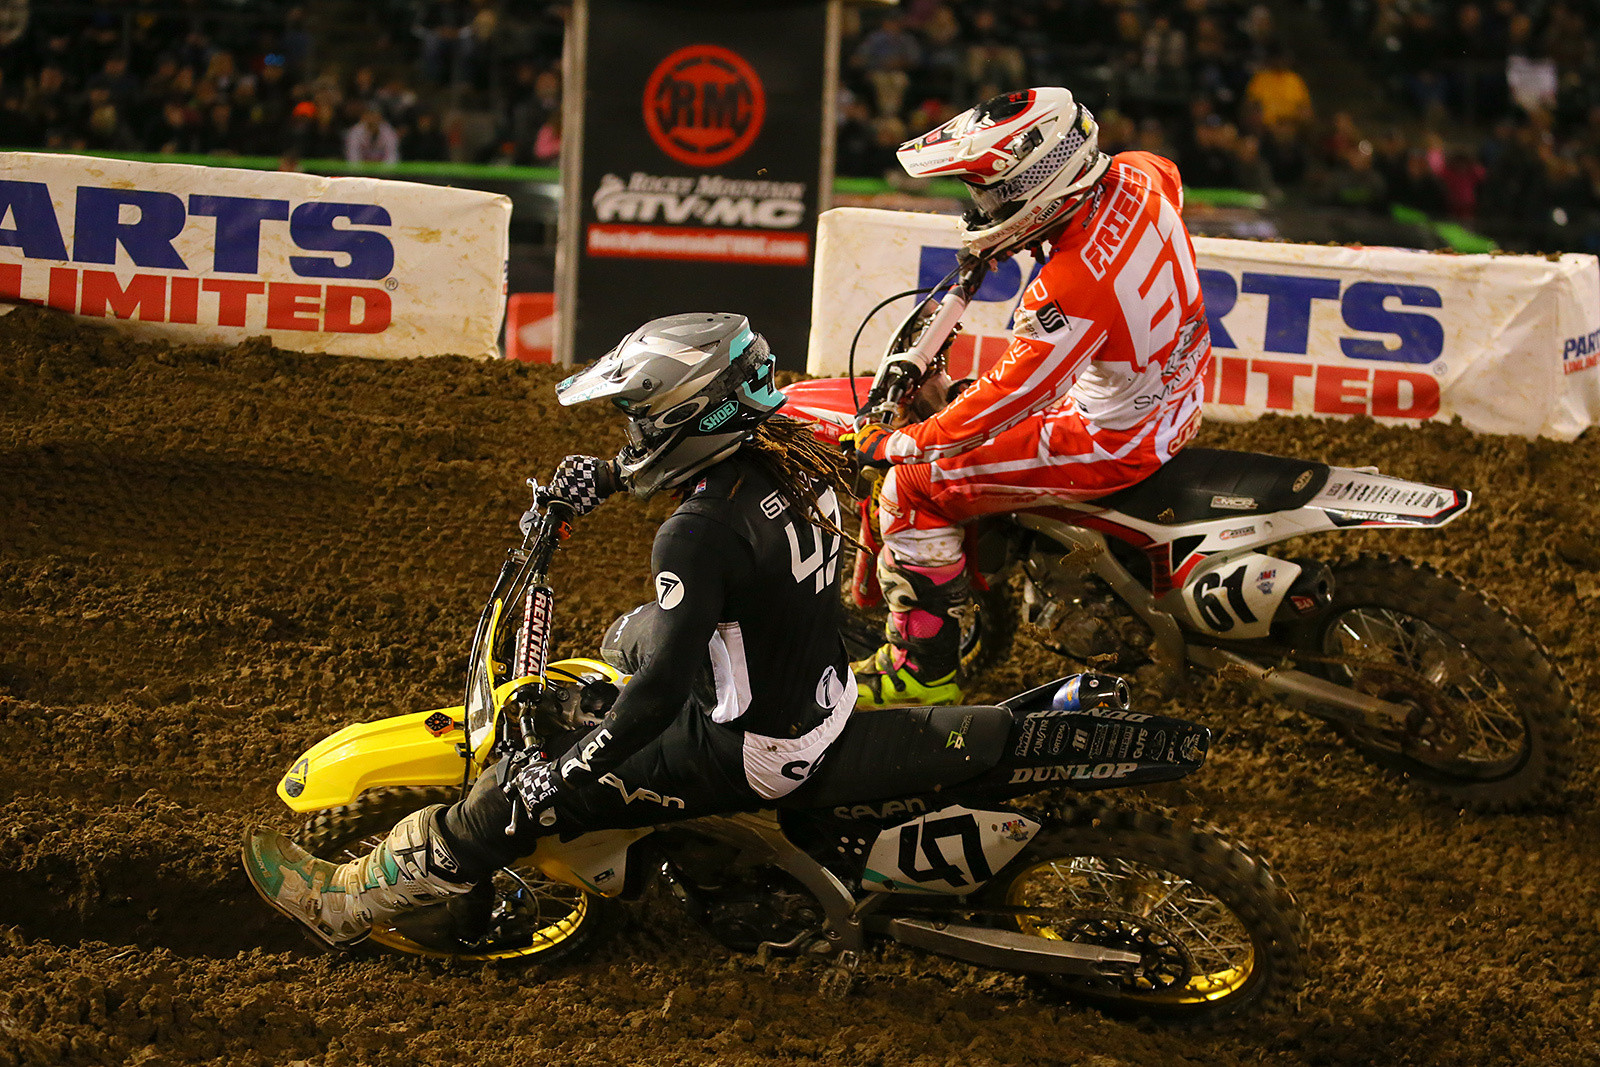 Malcolm Stewart and Vince Friese - Photo Blast: Oakland - Motocross Pictures - Vital MX